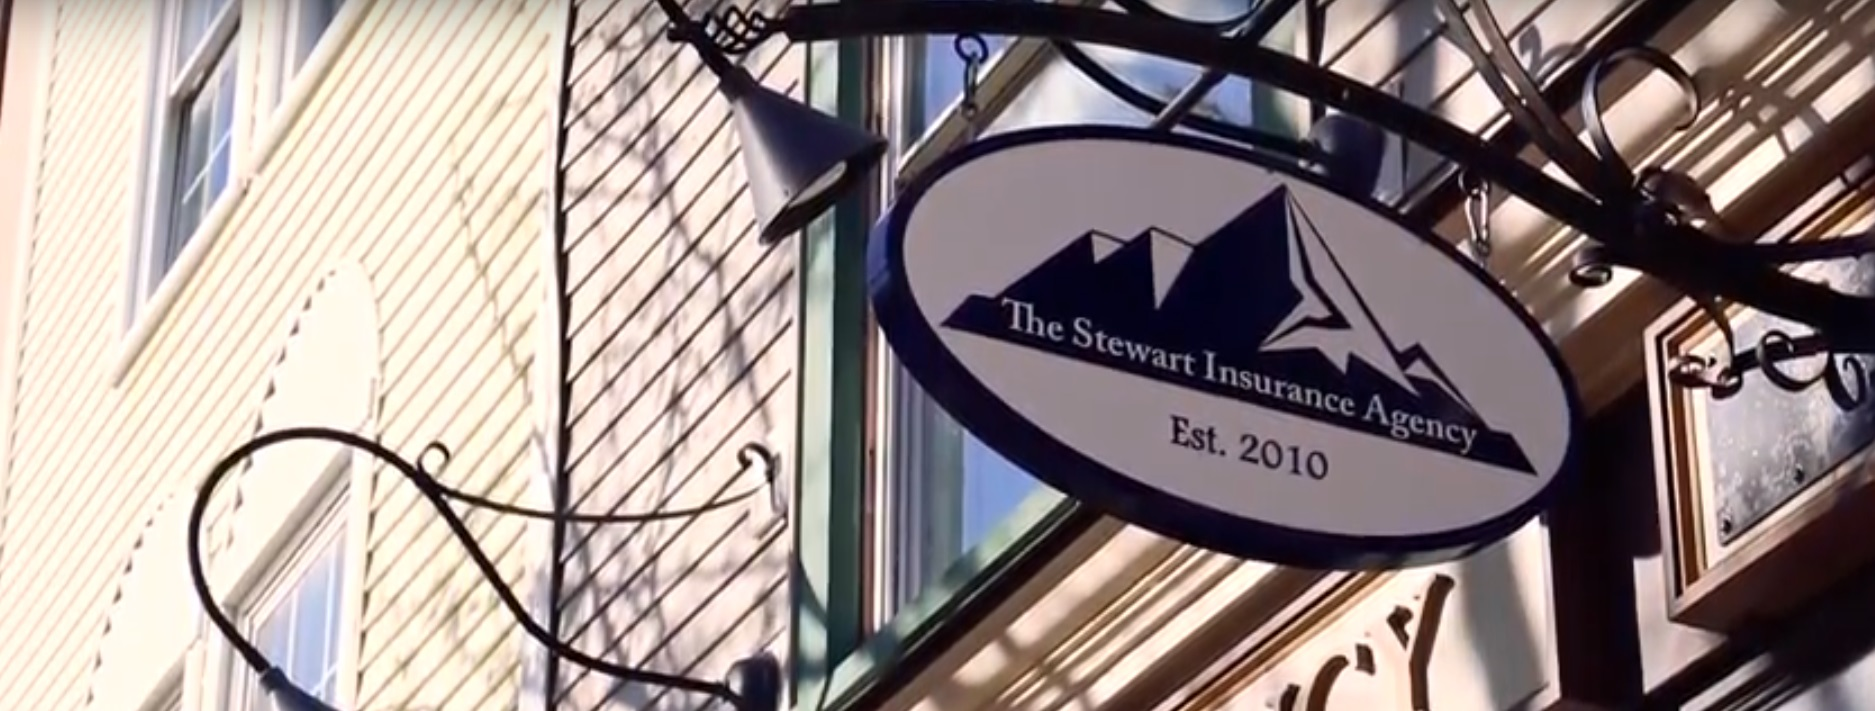 The Stewart Insurance Agency sign